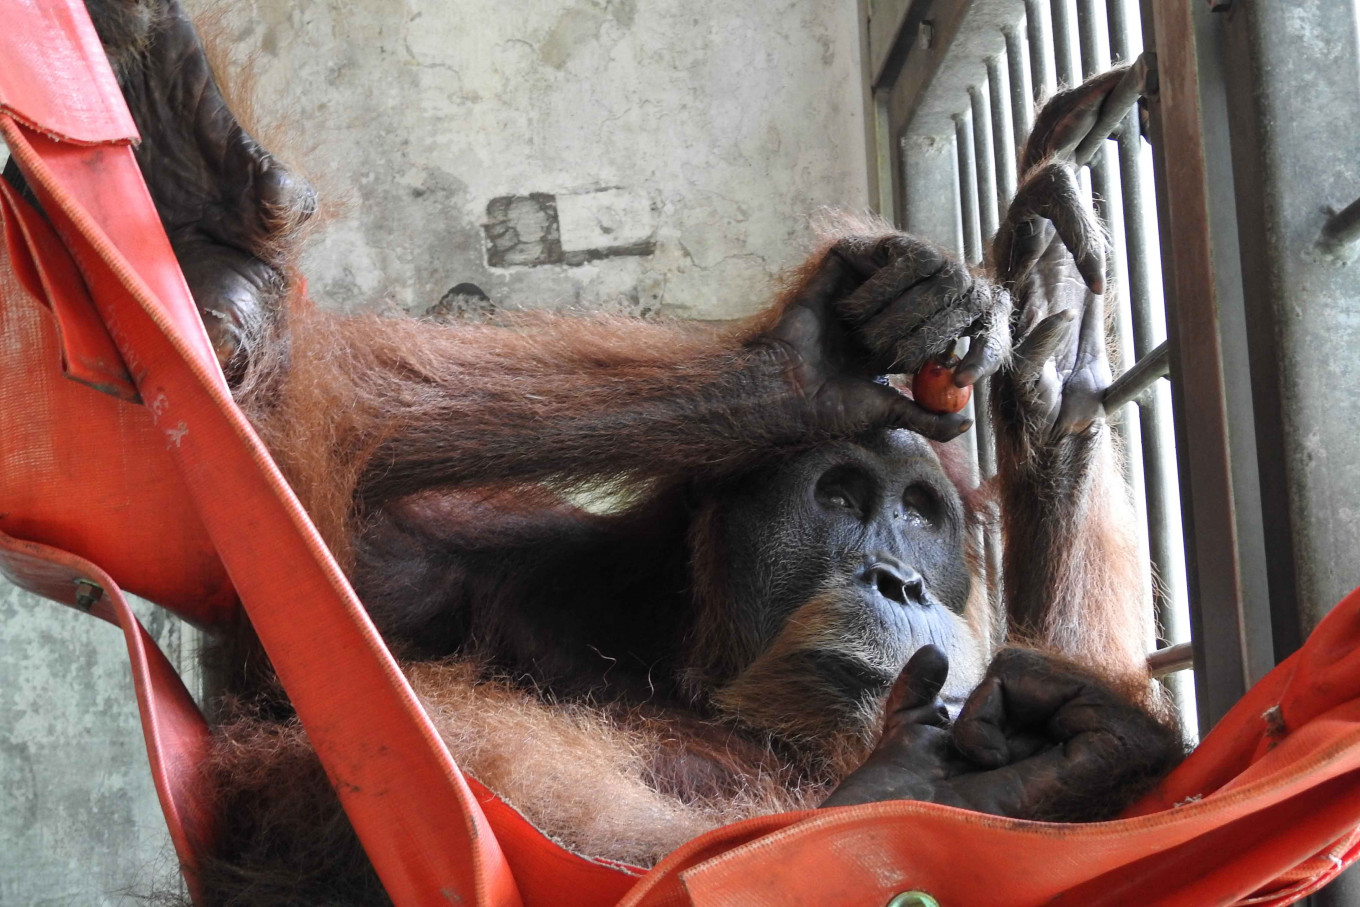 Blind orangutan found with 24 pellets his body now in stable condition